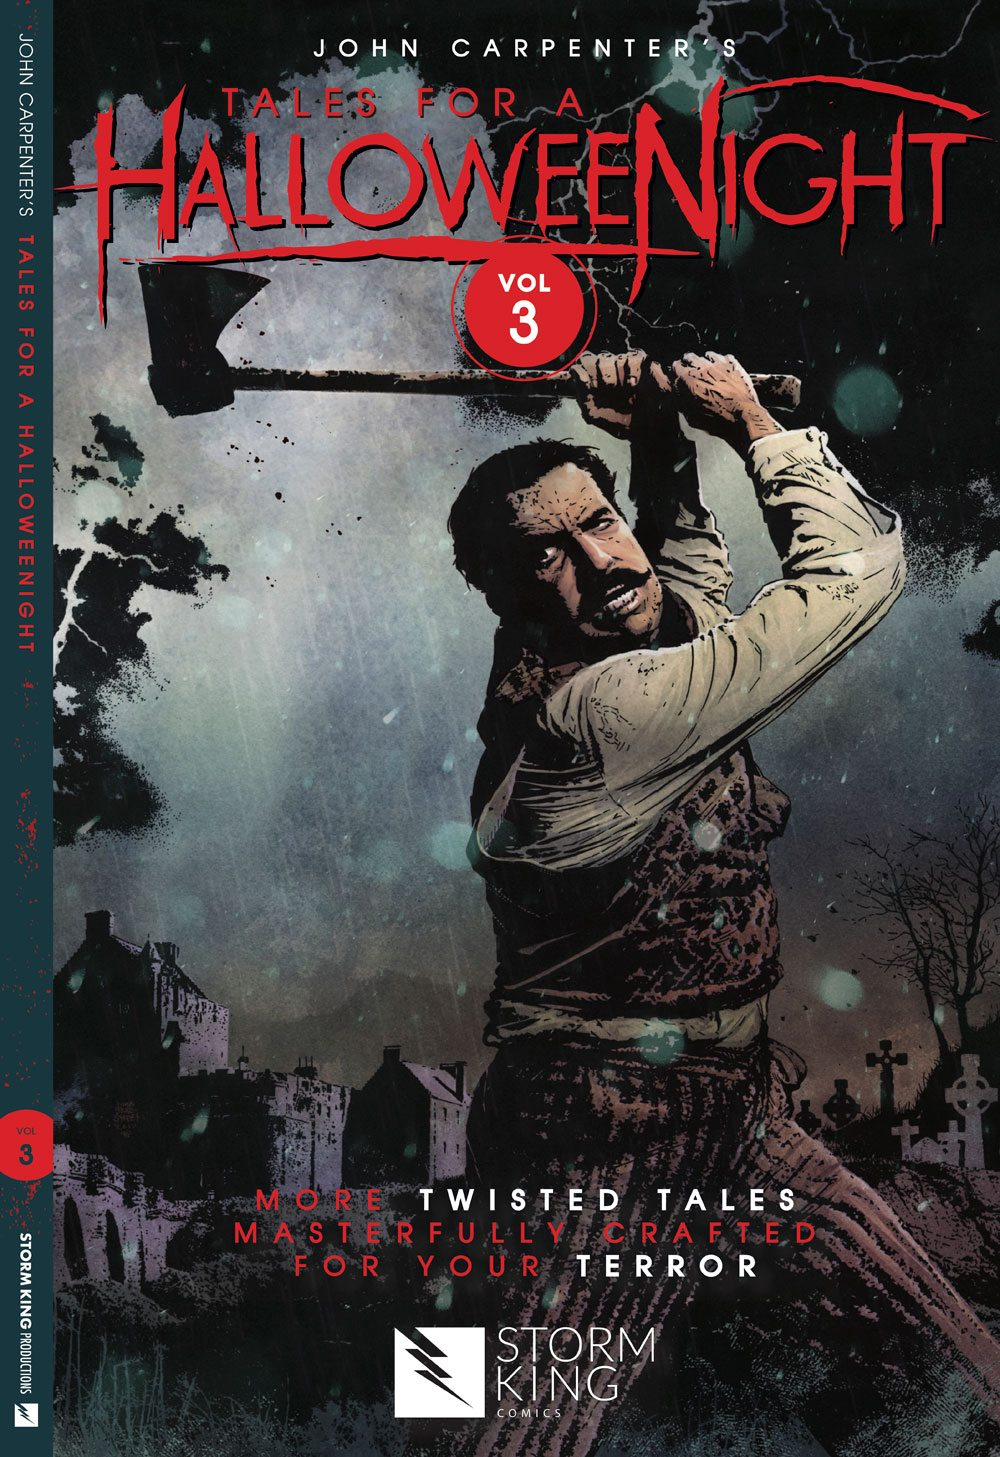 JCHN V3 RegCover FINALwSpine - Win a Copy of John Carpenter's Tales for a HalloweeNight Vol. 3